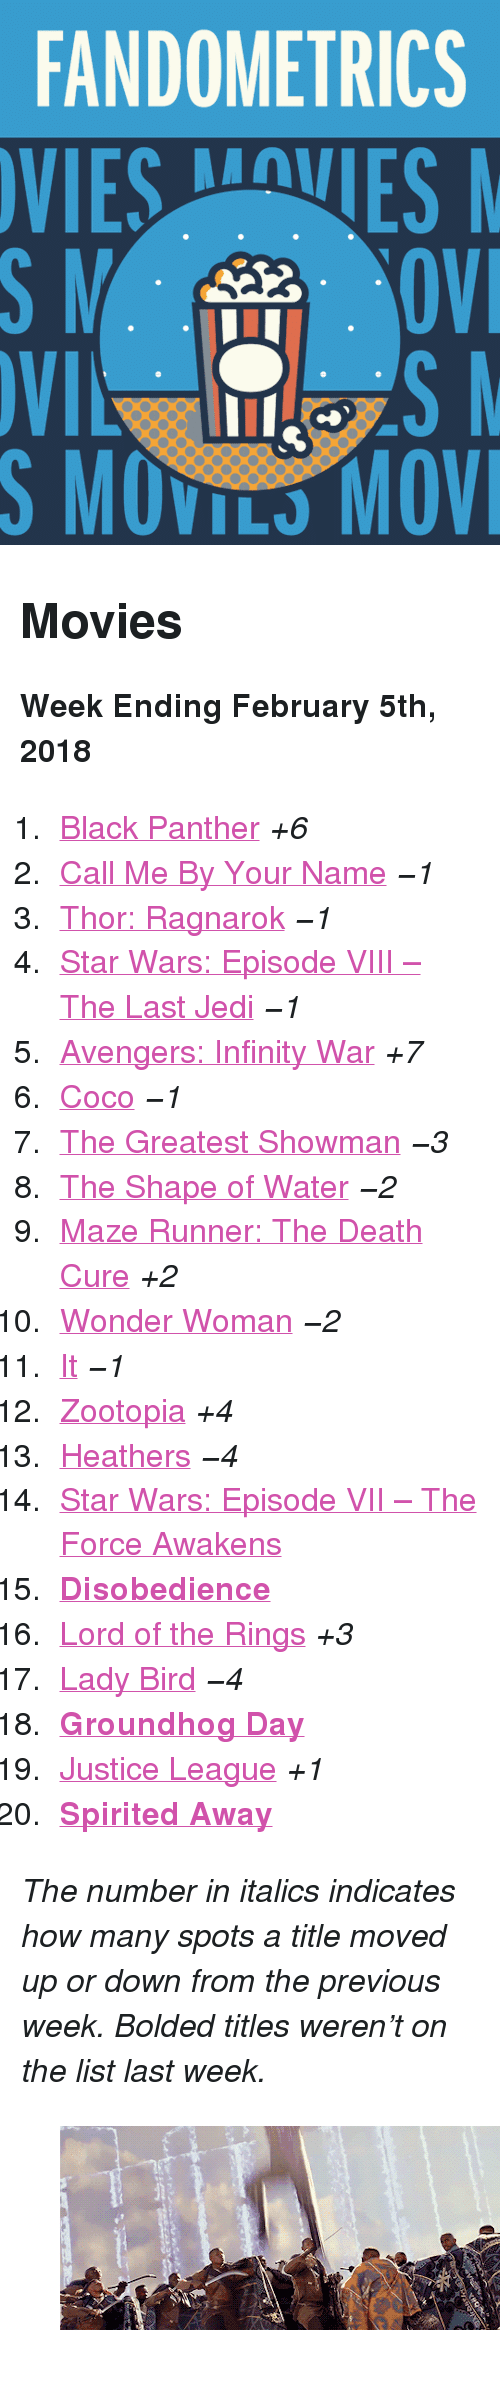 """groundhog: FANDOMETRICS  SMOVILS MOV <h2>Movies</h2><p><b>Week Ending February 5th, 2018</b></p><ol><li><a href=""""http://www.tumblr.com/search/black%20panther"""">Black Panther</a><i>+6</i></li>  <li><a href=""""http://www.tumblr.com/search/call%20me%20by%20your%20name"""">Call Me By Your Name</a><i><i>−1</i></i></li>  <li><a href=""""http://www.tumblr.com/search/thor%20ragnarok"""">Thor: Ragnarok</a><i><i>−1</i></i></li>  <li><a href=""""http://www.tumblr.com/search/the%20last%20jedi"""">Star Wars: Episode VIII – The Last Jedi</a><i><i>−1</i></i></li>  <li><a href=""""http://www.tumblr.com/search/infinity%20war"""">Avengers: Infinity War</a><i>+7</i></li>  <li><a href=""""http://www.tumblr.com/search/coco"""">Coco</a><i><i>−1</i></i></li>  <li><a href=""""http://www.tumblr.com/search/the%20greatest%20showman"""">The Greatest Showman</a><i><i>−3</i></i></li>  <li><a href=""""http://www.tumblr.com/search/the%20shape%20of%20water"""">The Shape of Water</a><i><i>−2</i></i></li>  <li><a href=""""http://www.tumblr.com/search/the%20maze%20runner"""">Maze Runner: The Death Cure</a><i>+2</i></li>  <li><a href=""""http://www.tumblr.com/search/wonder%20woman"""">Wonder Woman</a><i><i>−2</i></i></li>  <li><a href=""""http://www.tumblr.com/search/it%202017"""">It</a><i><i>−1</i></i></li>  <li><a href=""""http://www.tumblr.com/search/zootopia"""">Zootopia</a><i>+4</i></li>  <li><a href=""""http://www.tumblr.com/search/heathers"""">Heathers</a><i><i>−4</i></i></li>  <li><a href=""""http://www.tumblr.com/search/the%20force%20awakens"""">Star Wars: Episode VII – The Force Awakens</a></li>  <li><a href=""""http://www.tumblr.com/search/disobedience""""><b>Disobedience</b></a></li>  <li><a href=""""http://www.tumblr.com/search/lotr"""">Lord of the Rings</a><i>+3</i></li>  <li><a href=""""http://www.tumblr.com/search/lady%20bird"""">Lady Bird</a><i><i>−4</i></i></li>  <li><a href=""""http://www.tumblr.com/search/groundhog%20day""""><b>Groundhog Day</b></a></li>  <li><a href=""""http://www.tumblr.com/search/justice%20league"""">Justice League</a><i>+1</i></li>  <li><a href=""""http://www.tumblr.com/"""